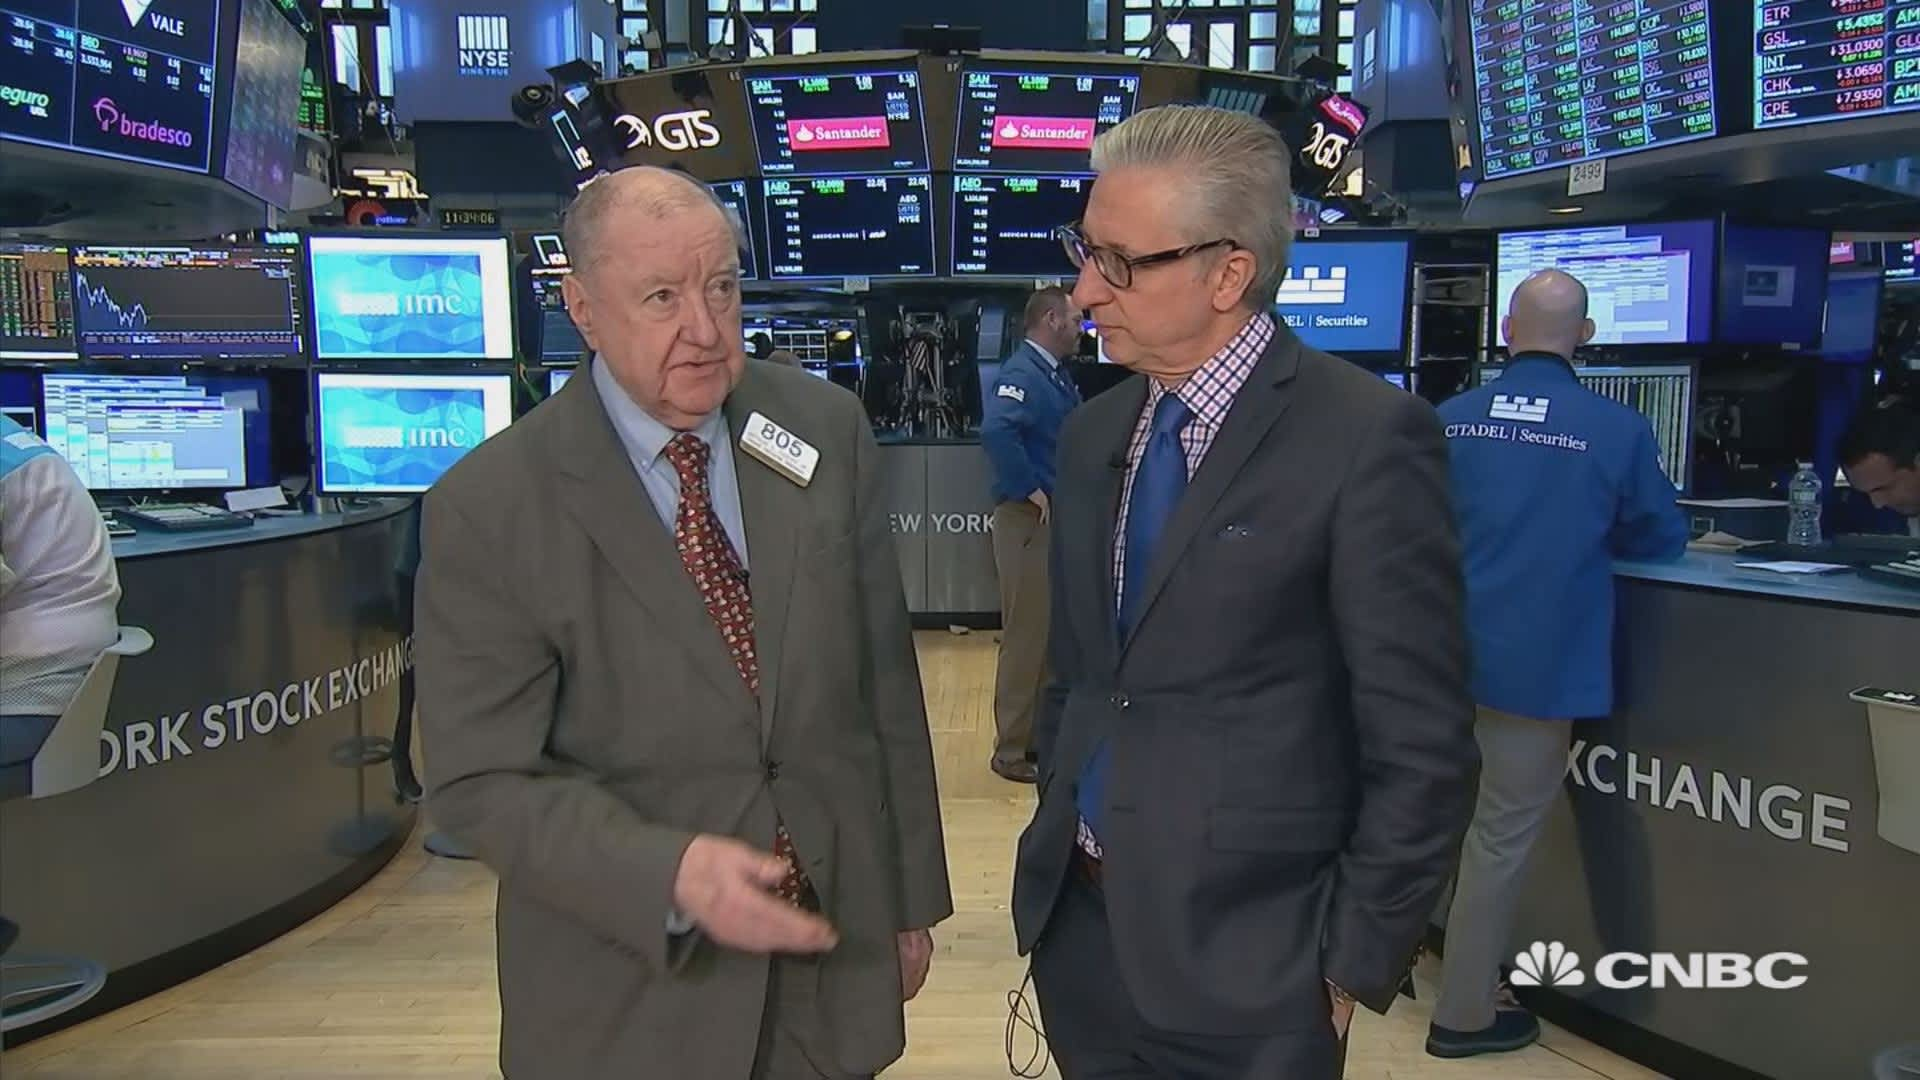 CNBC U S  Video News Clips on the Stock Market - CNBC